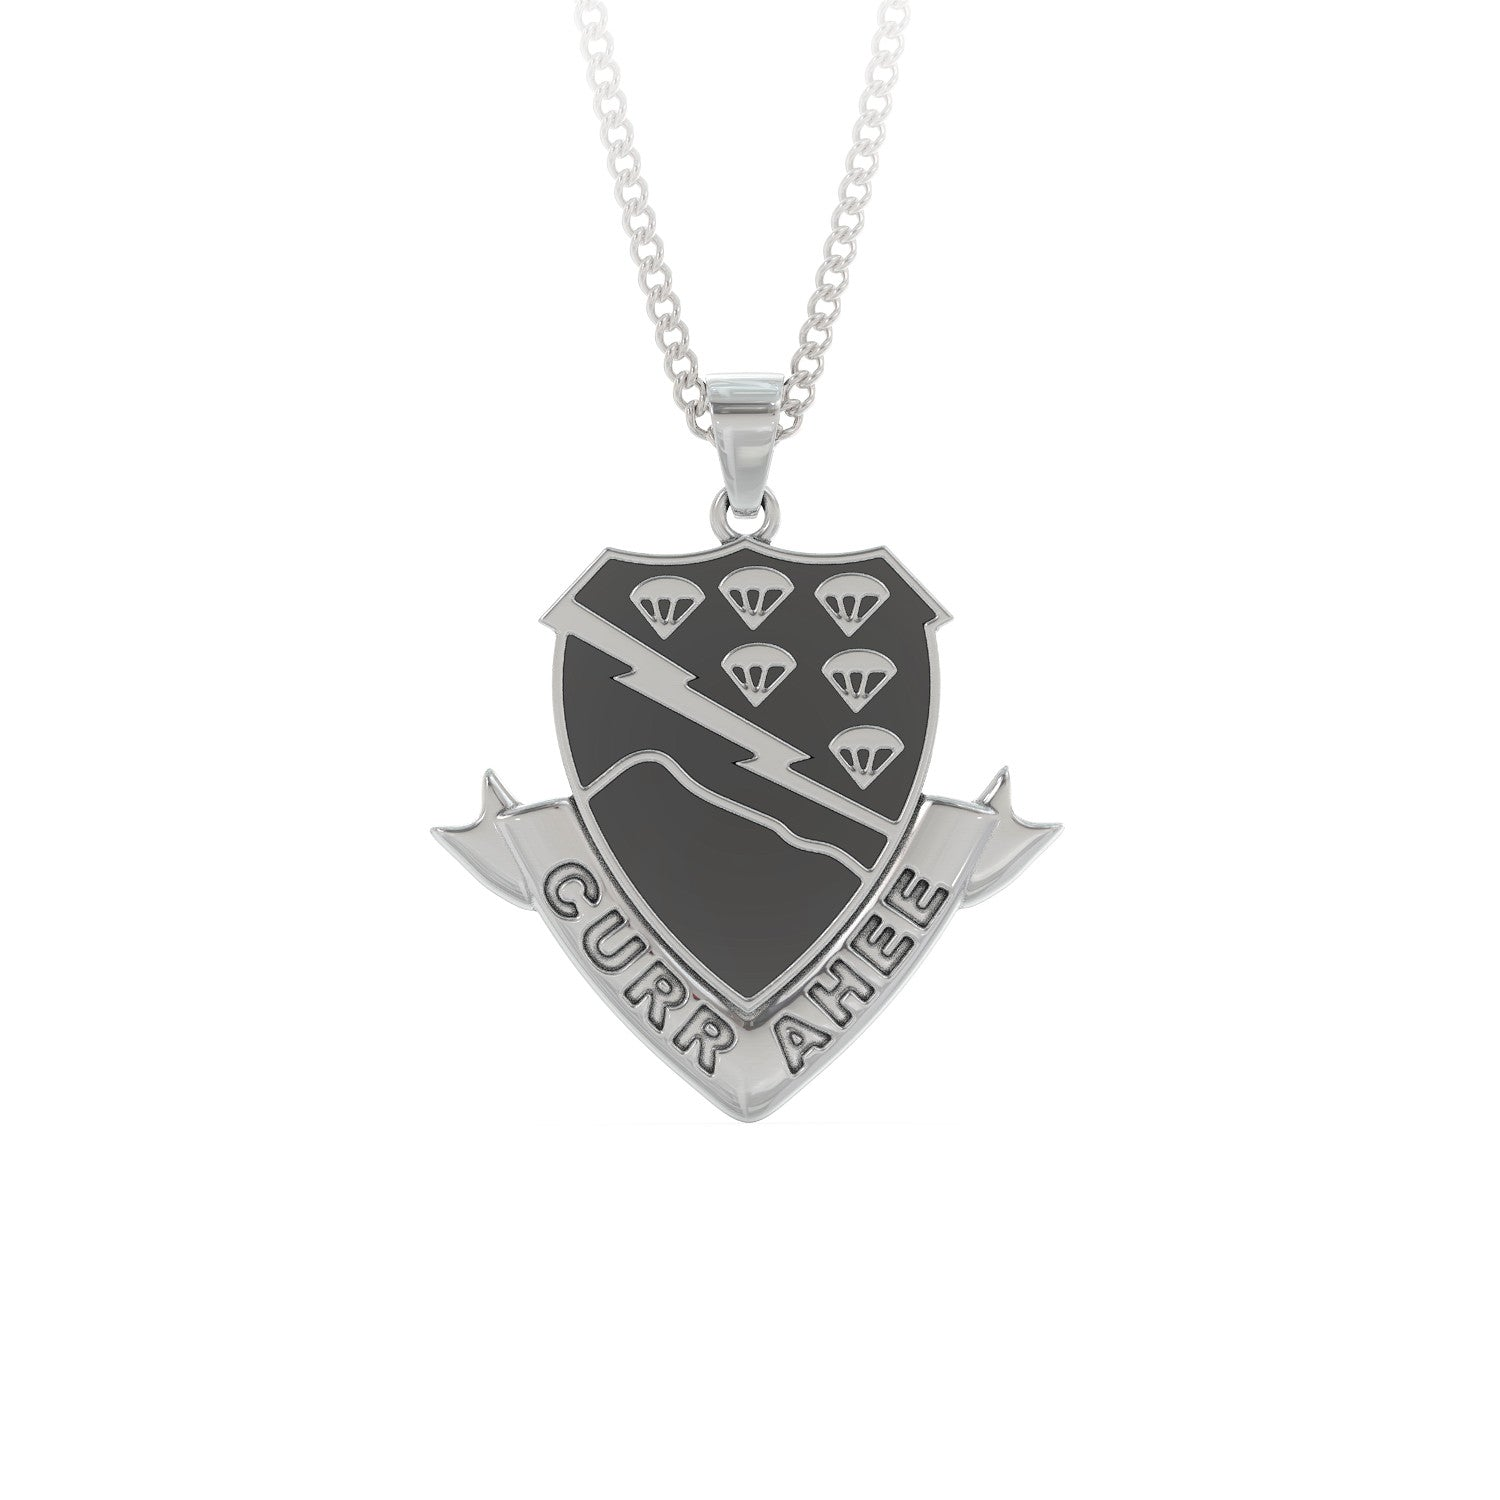 506th Infantry Regiment (Red Currahee) Pendant